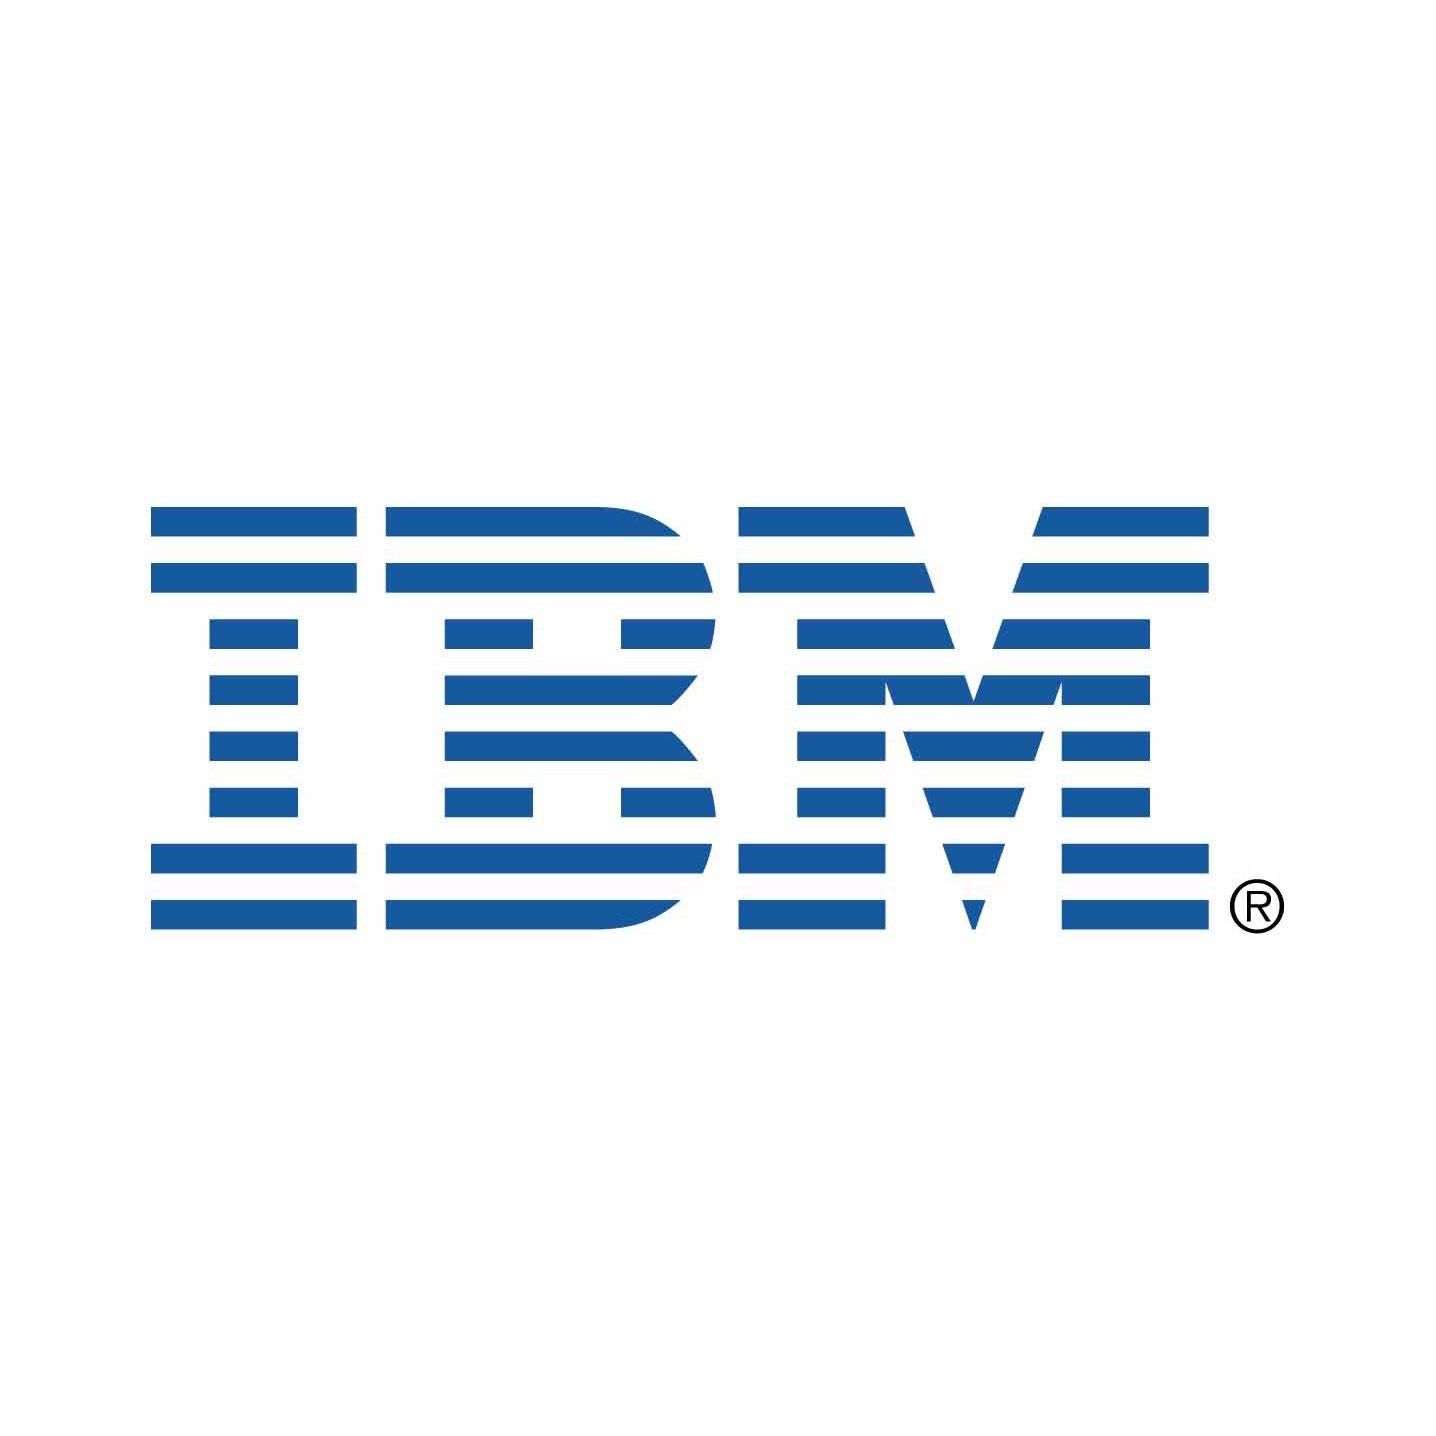 IBM uses PublishPress